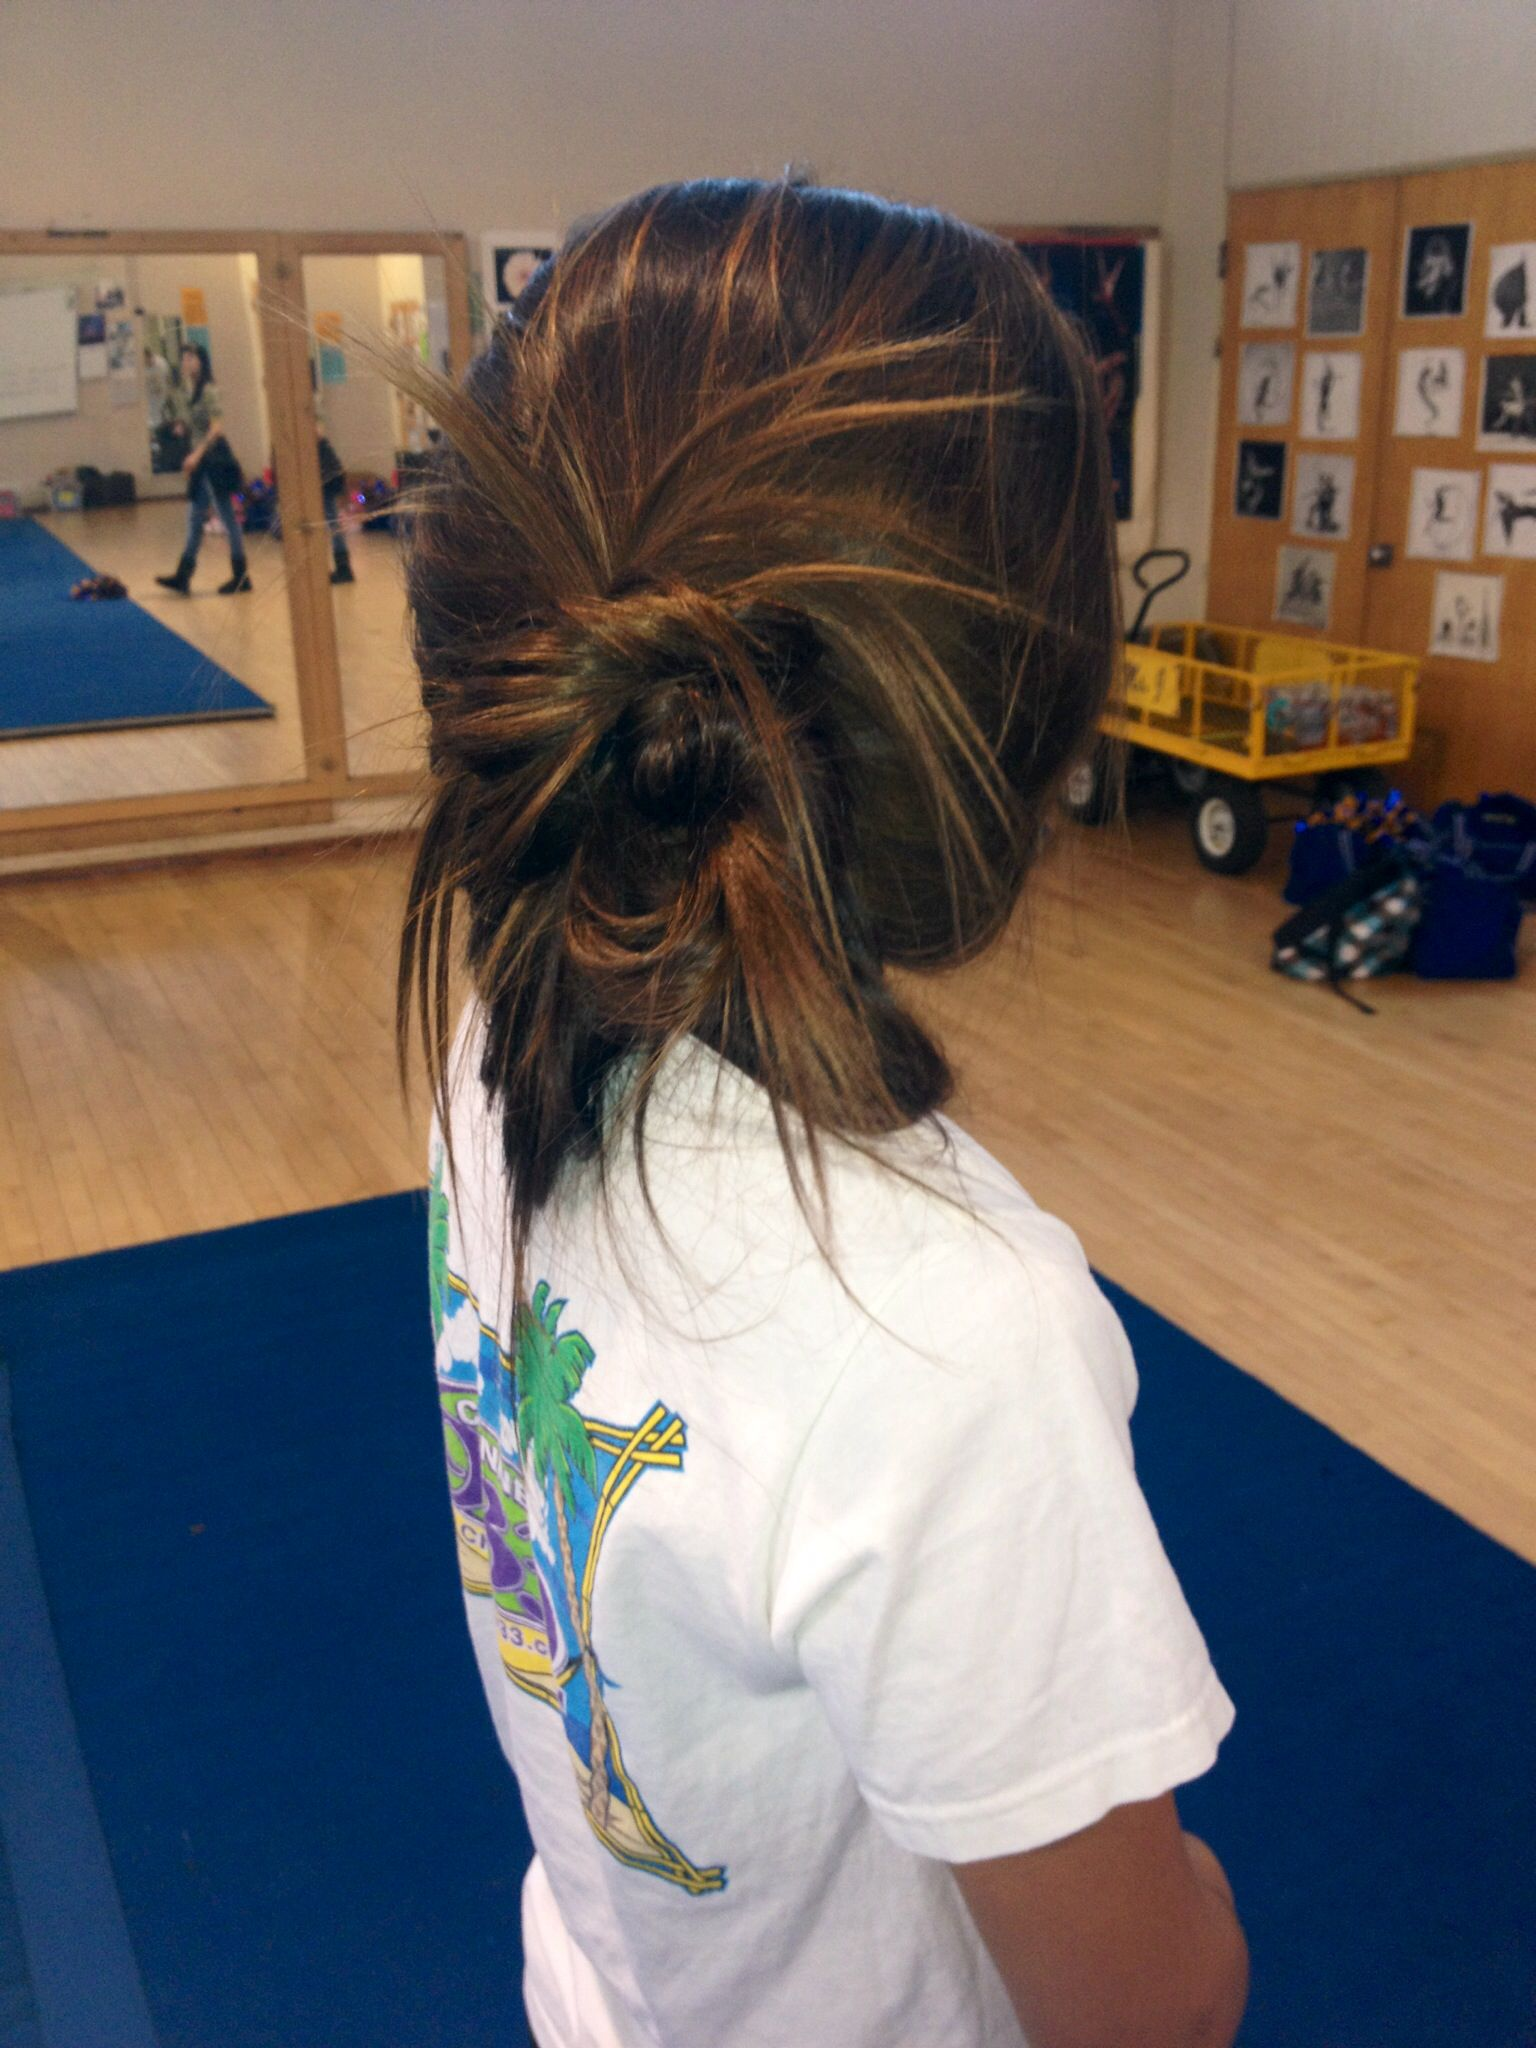 perfect hair for cheer practice | hair | cheer hair, hair